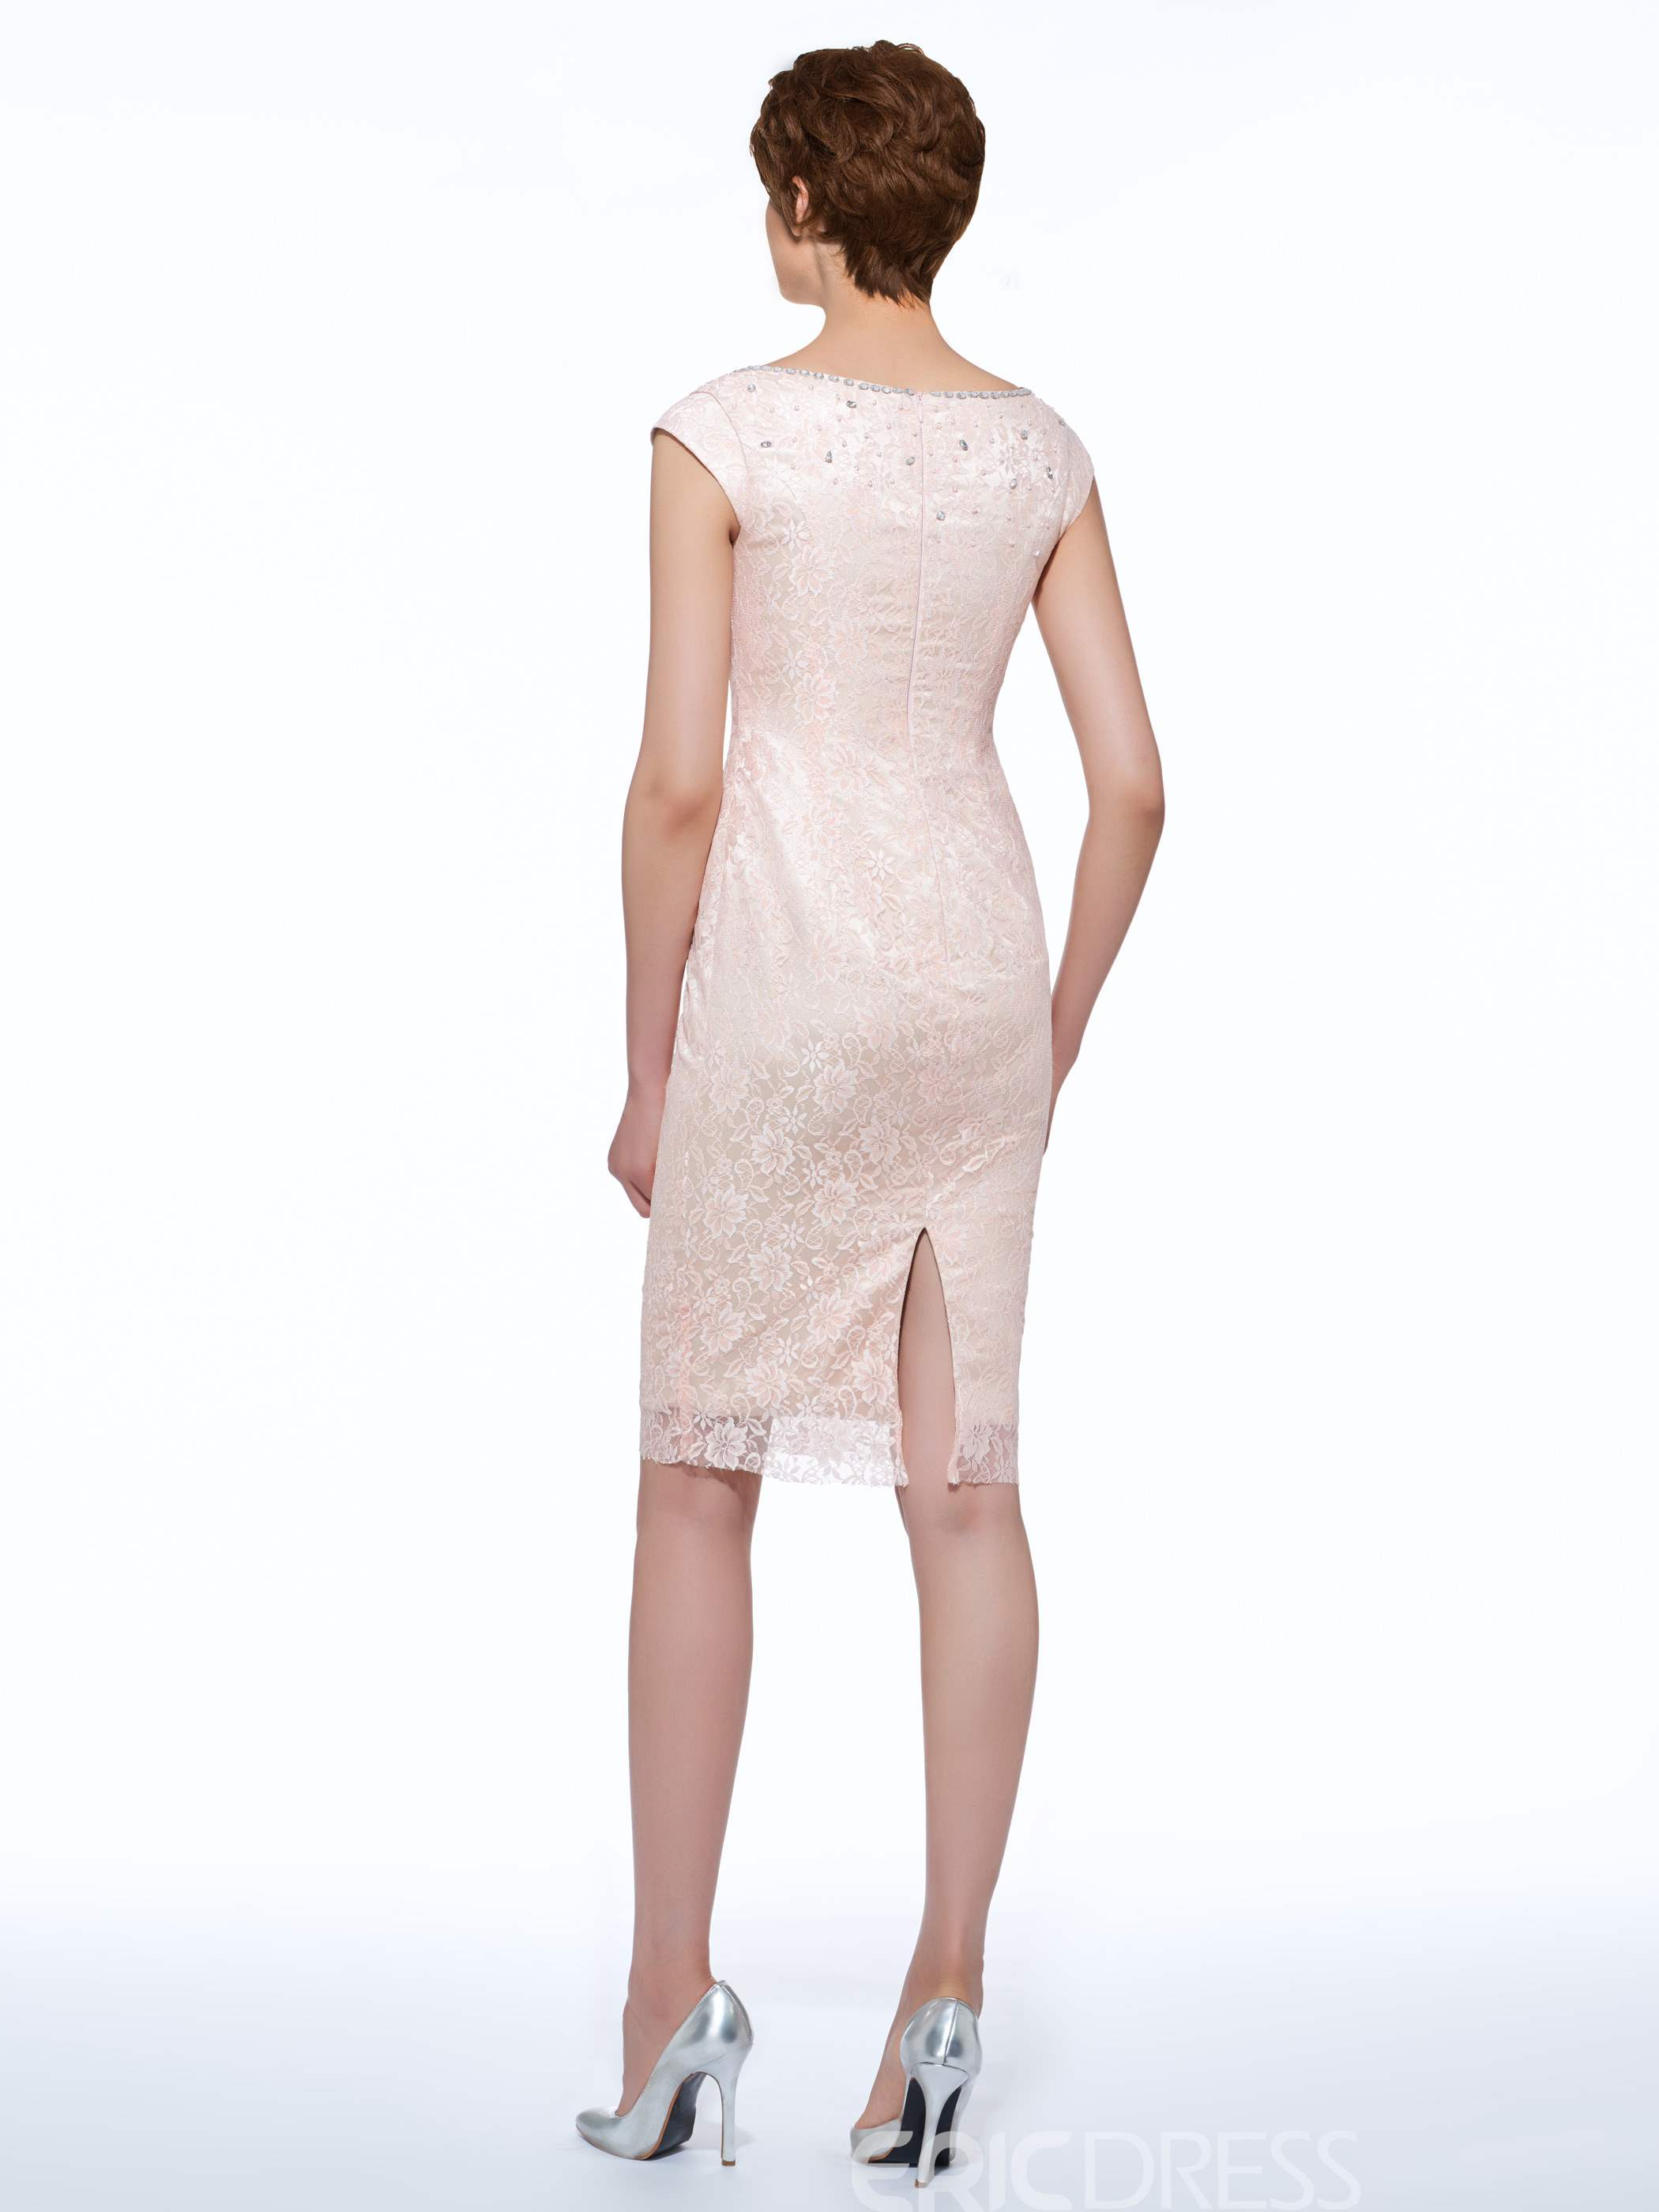 Ericdress Beautiful Sheath Knee Length Lace Mother Of The Bride Dress With Jacket